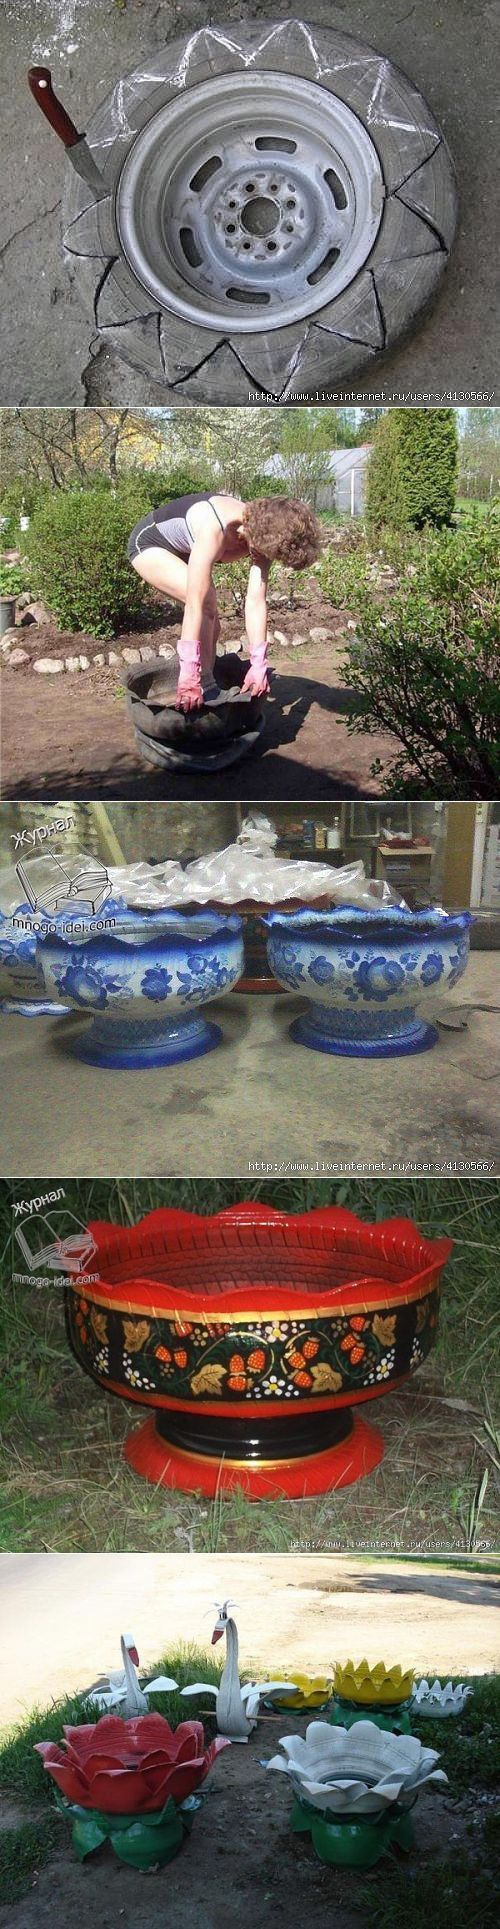 """Ваза из старой автомобильной покрышки [   """"DIY large flower planters and garden decorations made from old tires. What a creative way to recycle tires!"""",   """"This is perfect for extra tires!"""",   """"She cut and opened the tire and painted it."""",   """"Look at this what a cool imagination"""" ] #<br/> # #Old #Tire #Planters,<br/> # #Flower #Planters,<br/> # #Tires #Ideas,<br/> # #Recycle #Tires,<br/> # #Tire #Art,<br/> # #Her #Cut,<br/> # #Old #Tires,<br/> # #Ways #To #Recycle,<br/> # #Garden…"""